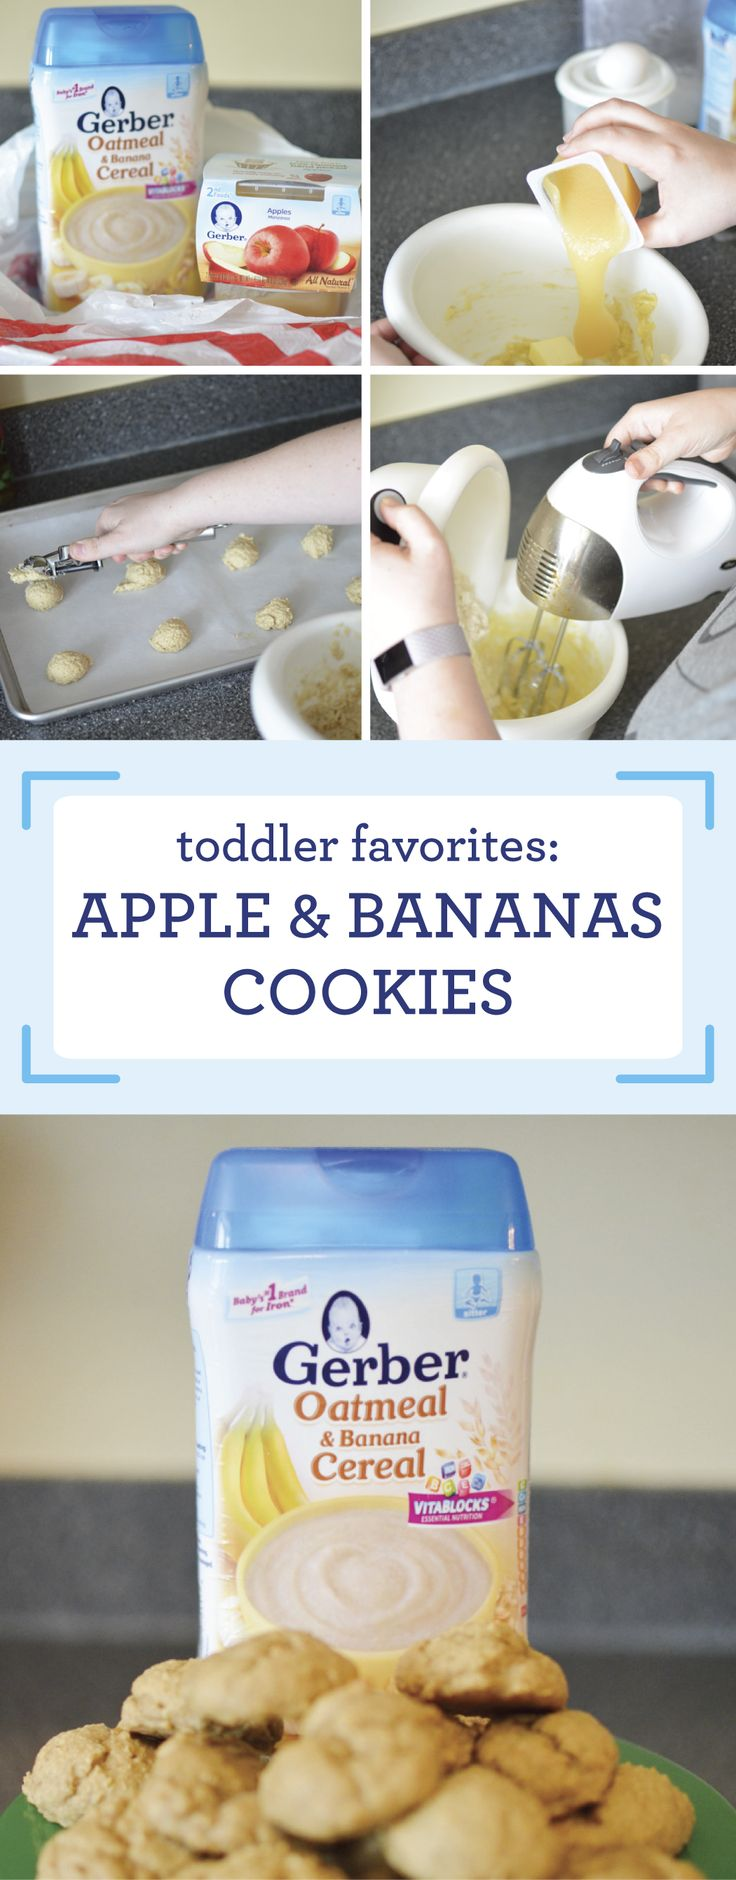 Looking for new ways to serve your toddler the solid foods they love? Check out this nutritious snack, complete with helpful article and this recipe for Apple and Bananas Cookies to get started! Find Gerber® Infant Cereals at Target—just two servings of the Infant Cereals meet 90% of your baby's daily iron!